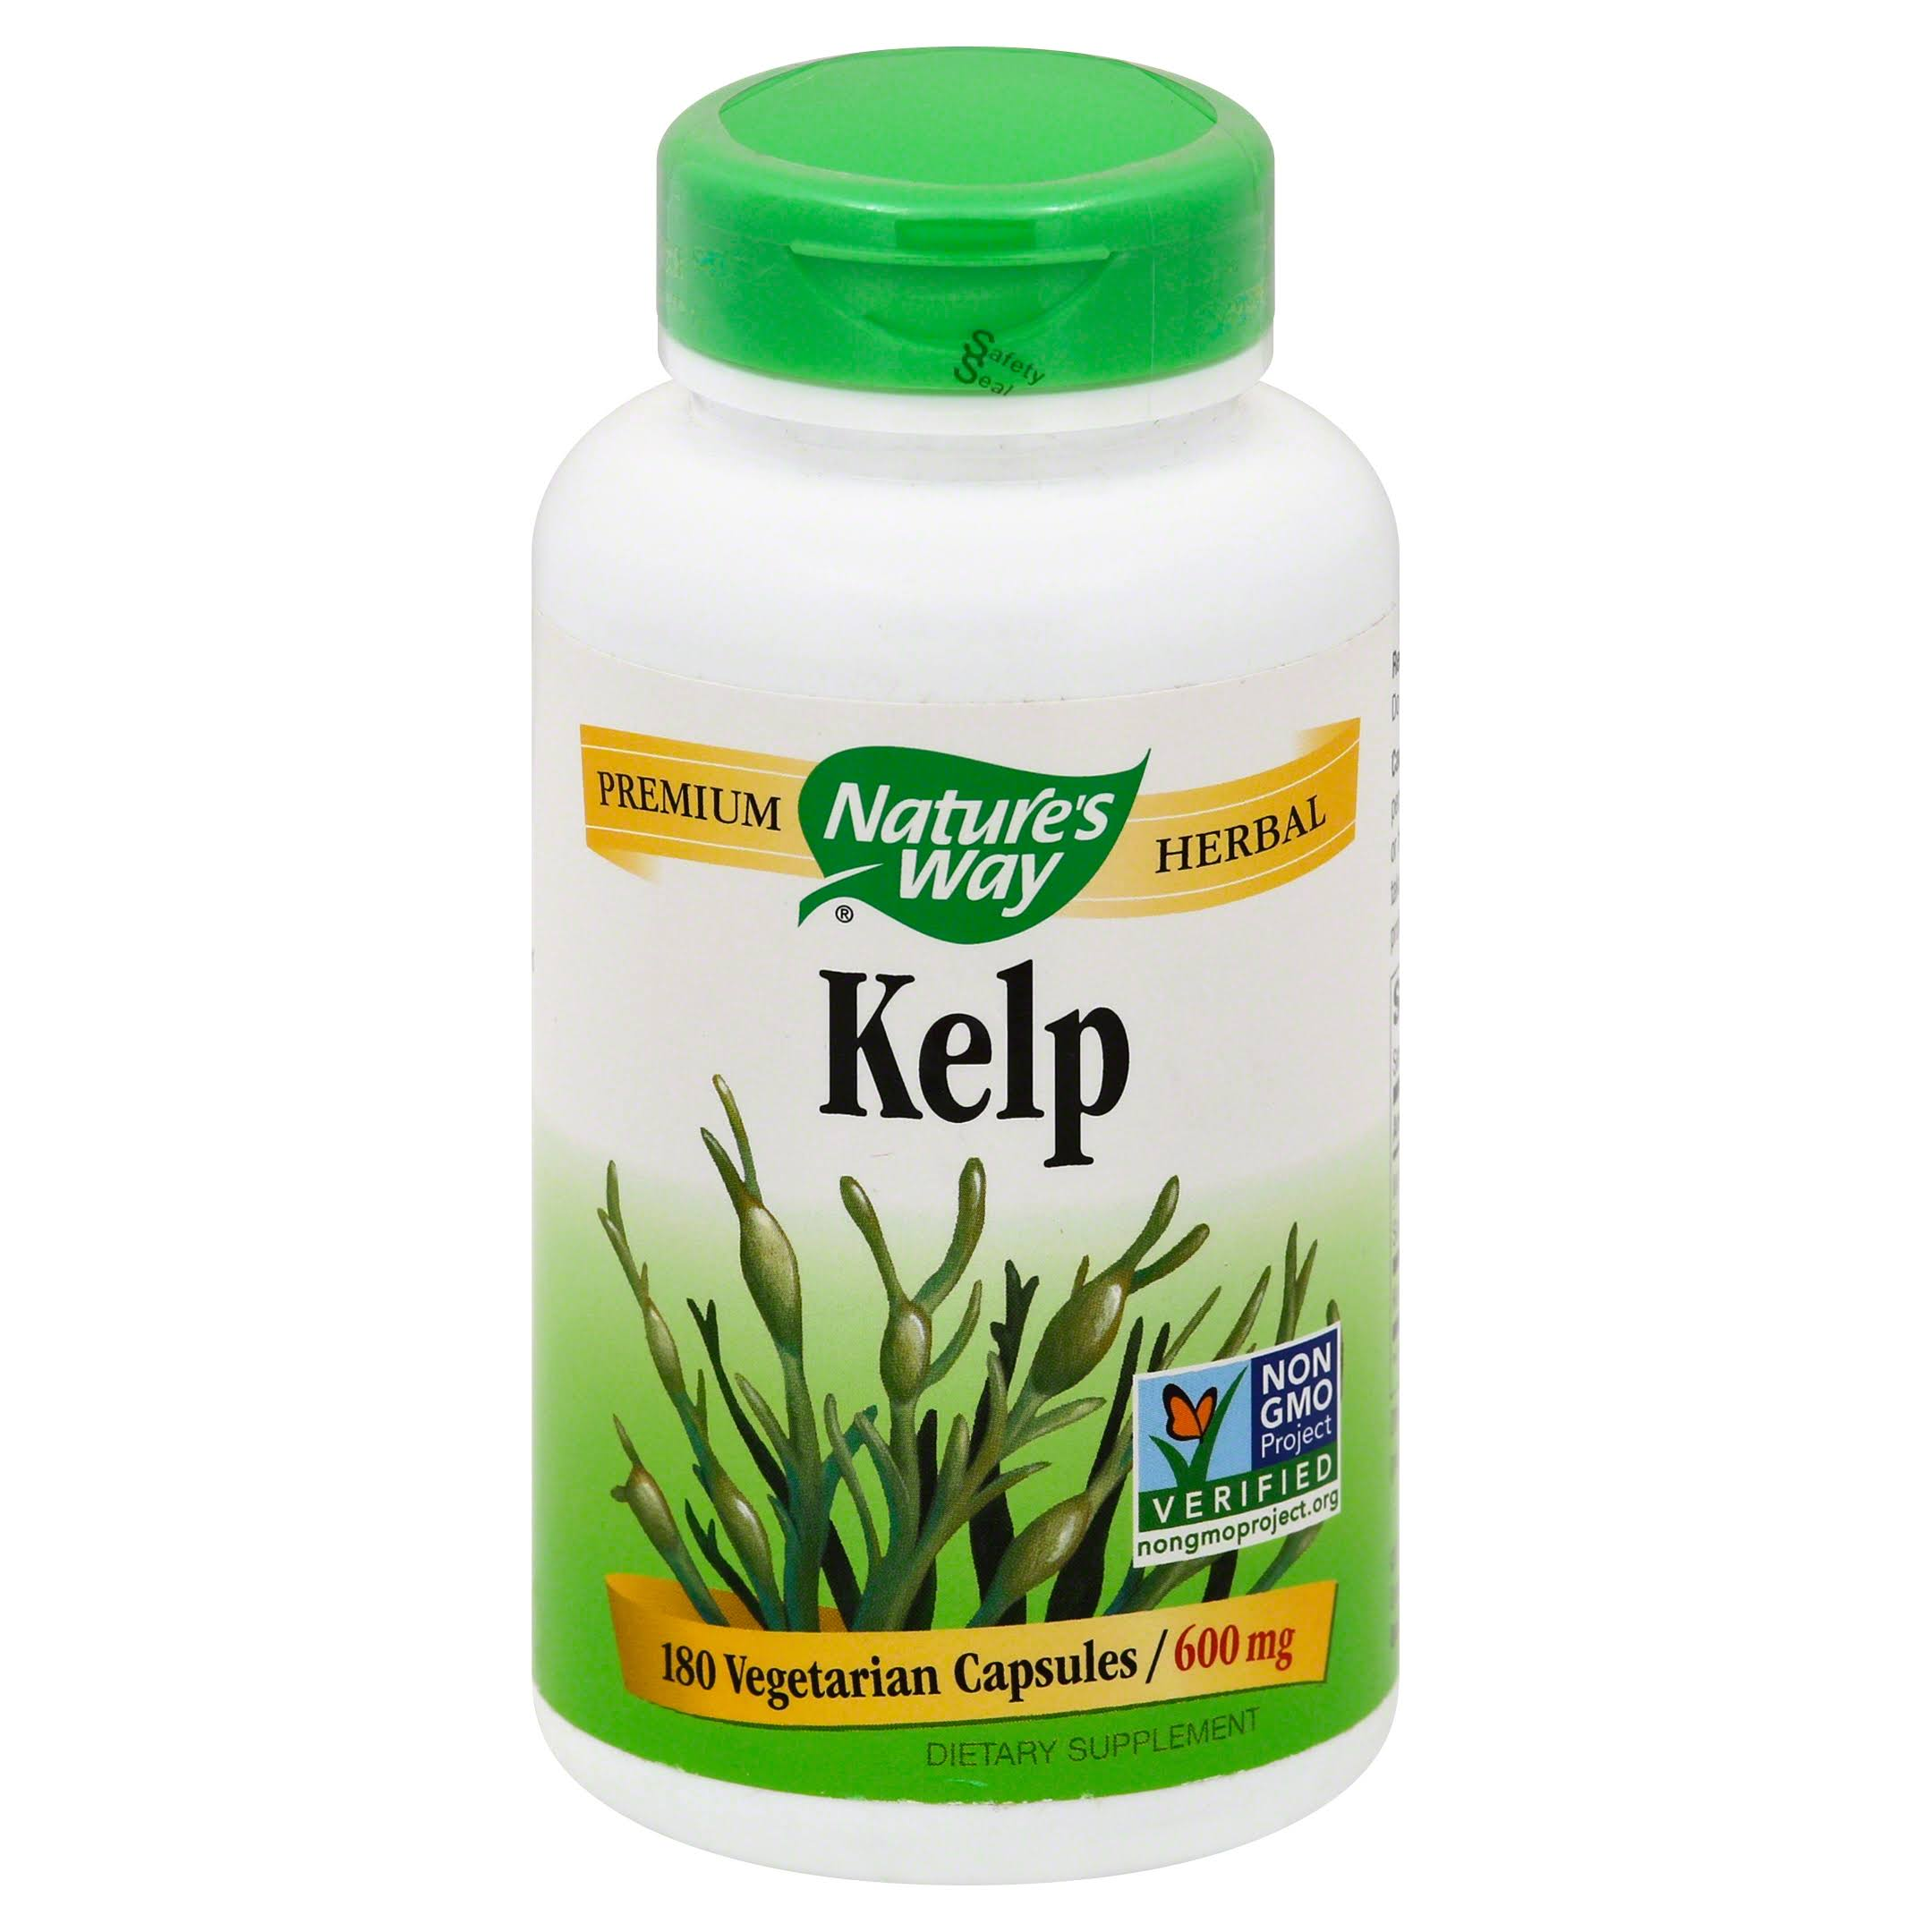 Nature's Way Kelp 600mg Vegetarian Capsules - x180